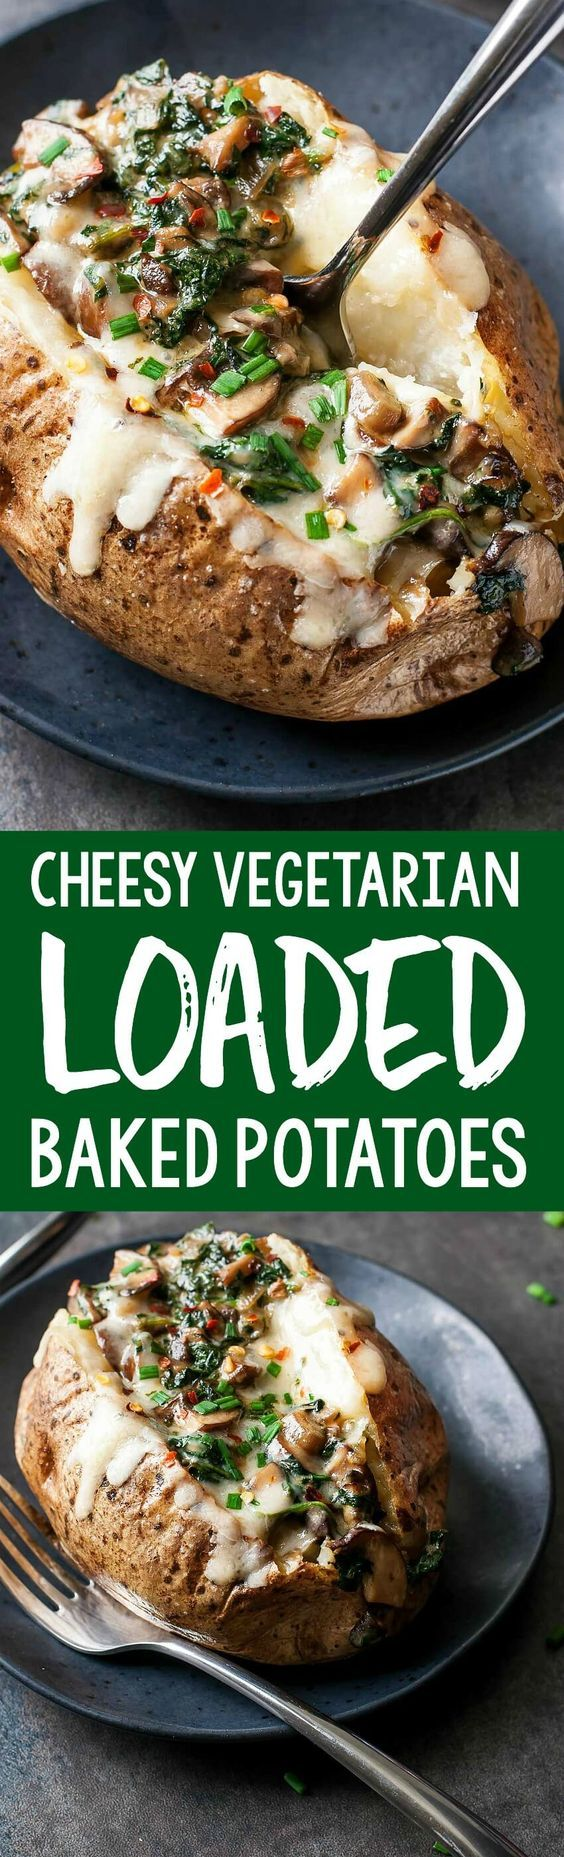 These Cheesy Vegetarian Loaded Baked Potatoes with Spinach and Mushrooms are packed to the brim with the most decadent sauce and a whole lot of veggie deliciousness!